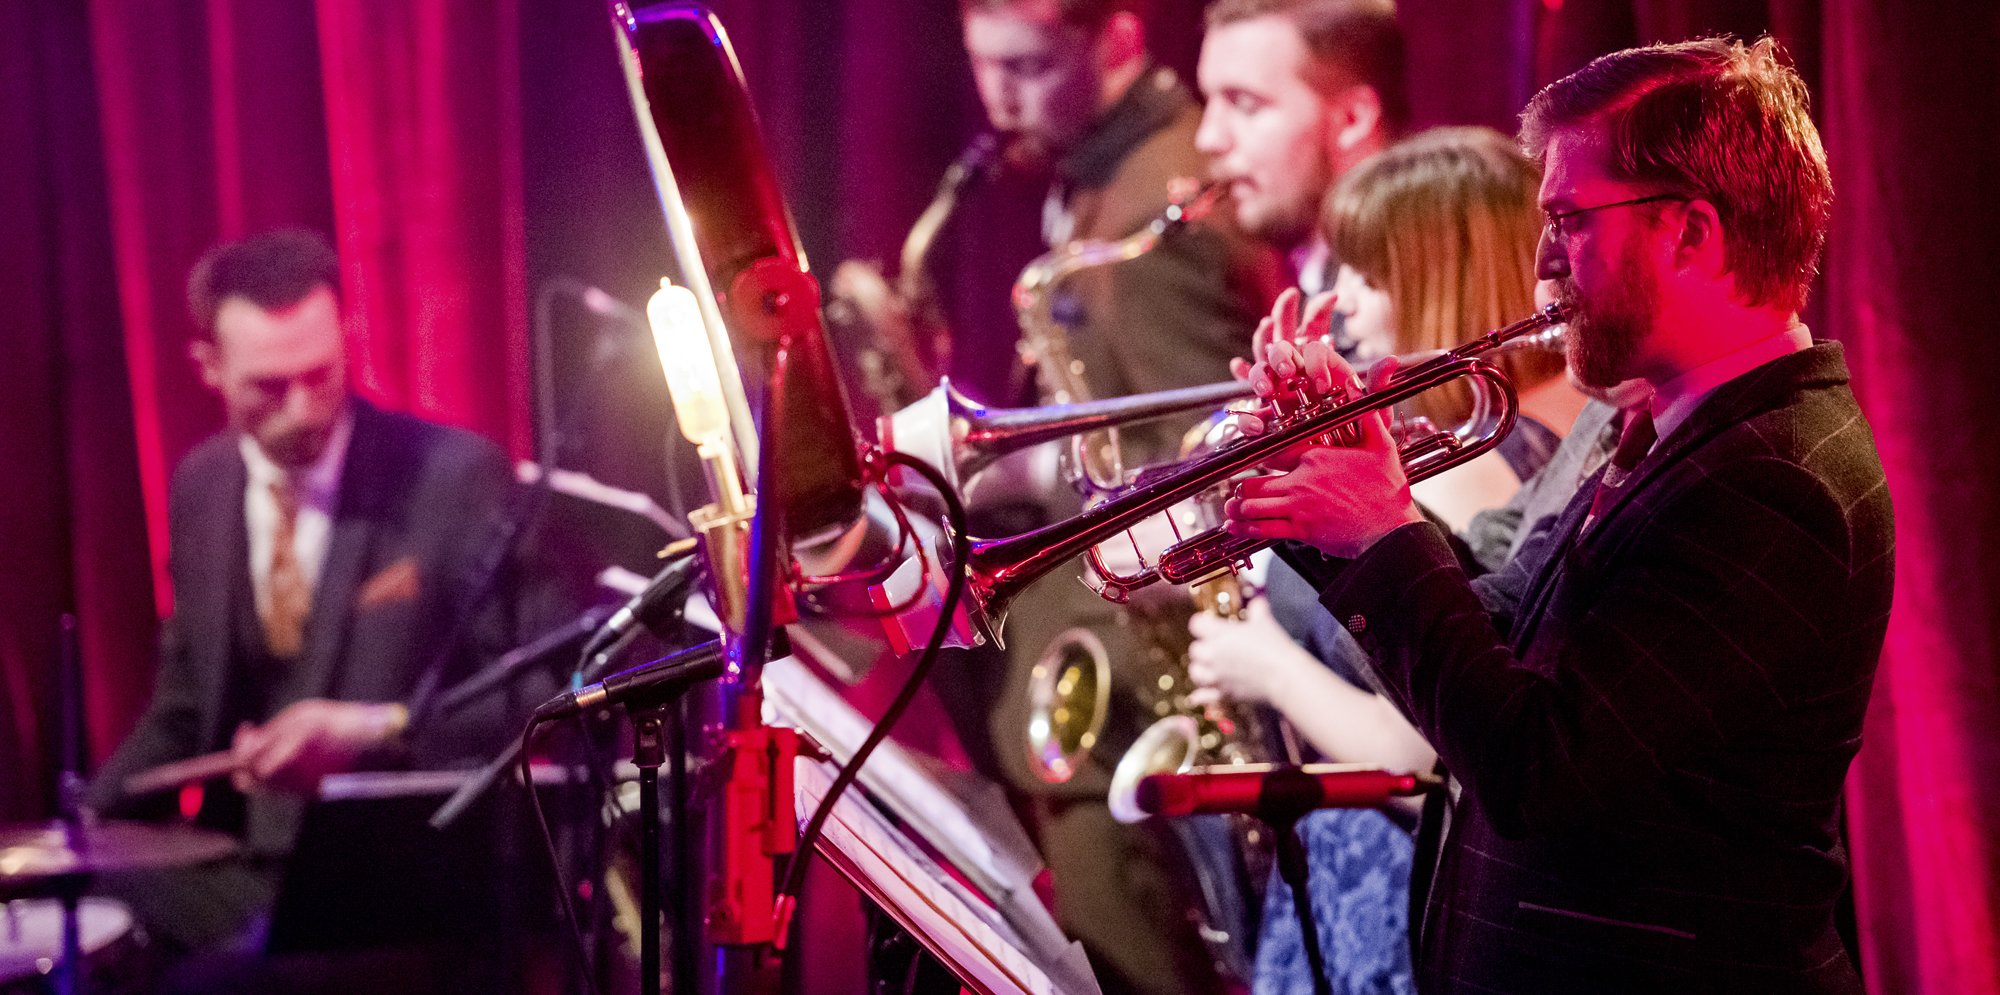 Swing That Music: a small big band, with a drummer, three people on saxophones and trumpet and in the foreground a man playing the trombone